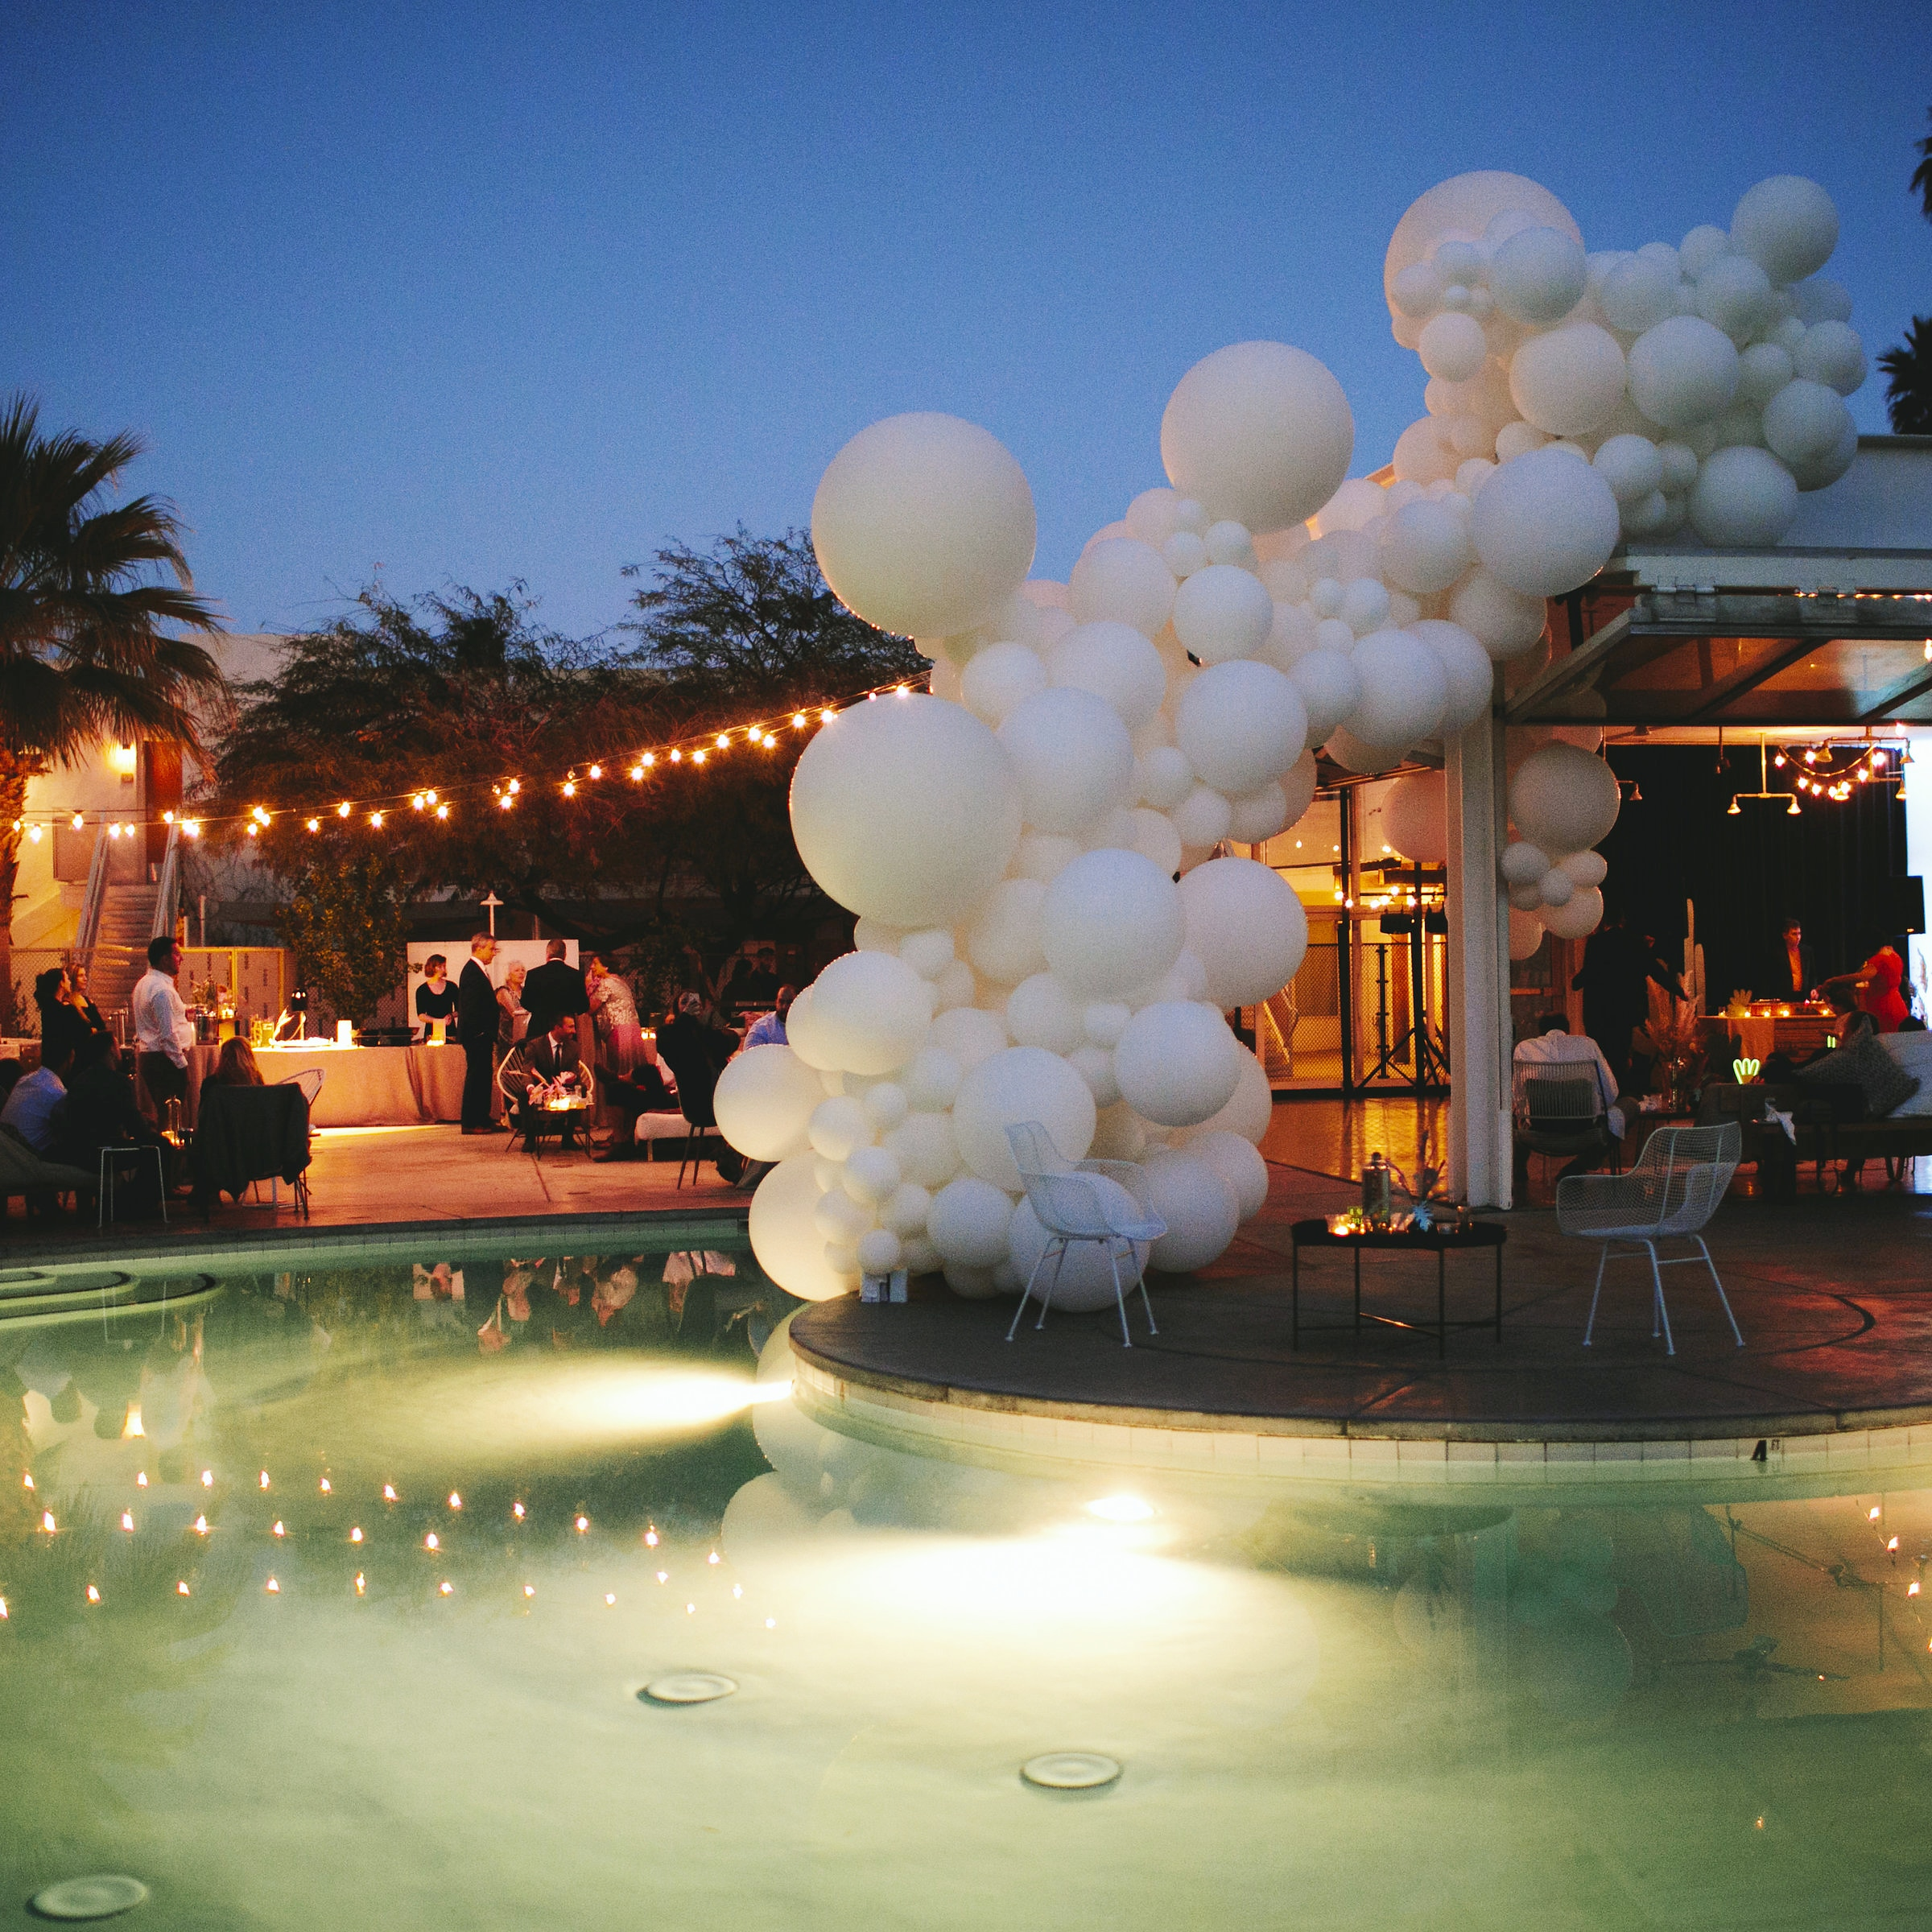 Palm Springs Wedding Balloon Art Installation - Poolside Balloon Decor - Zim Balloons.jpg